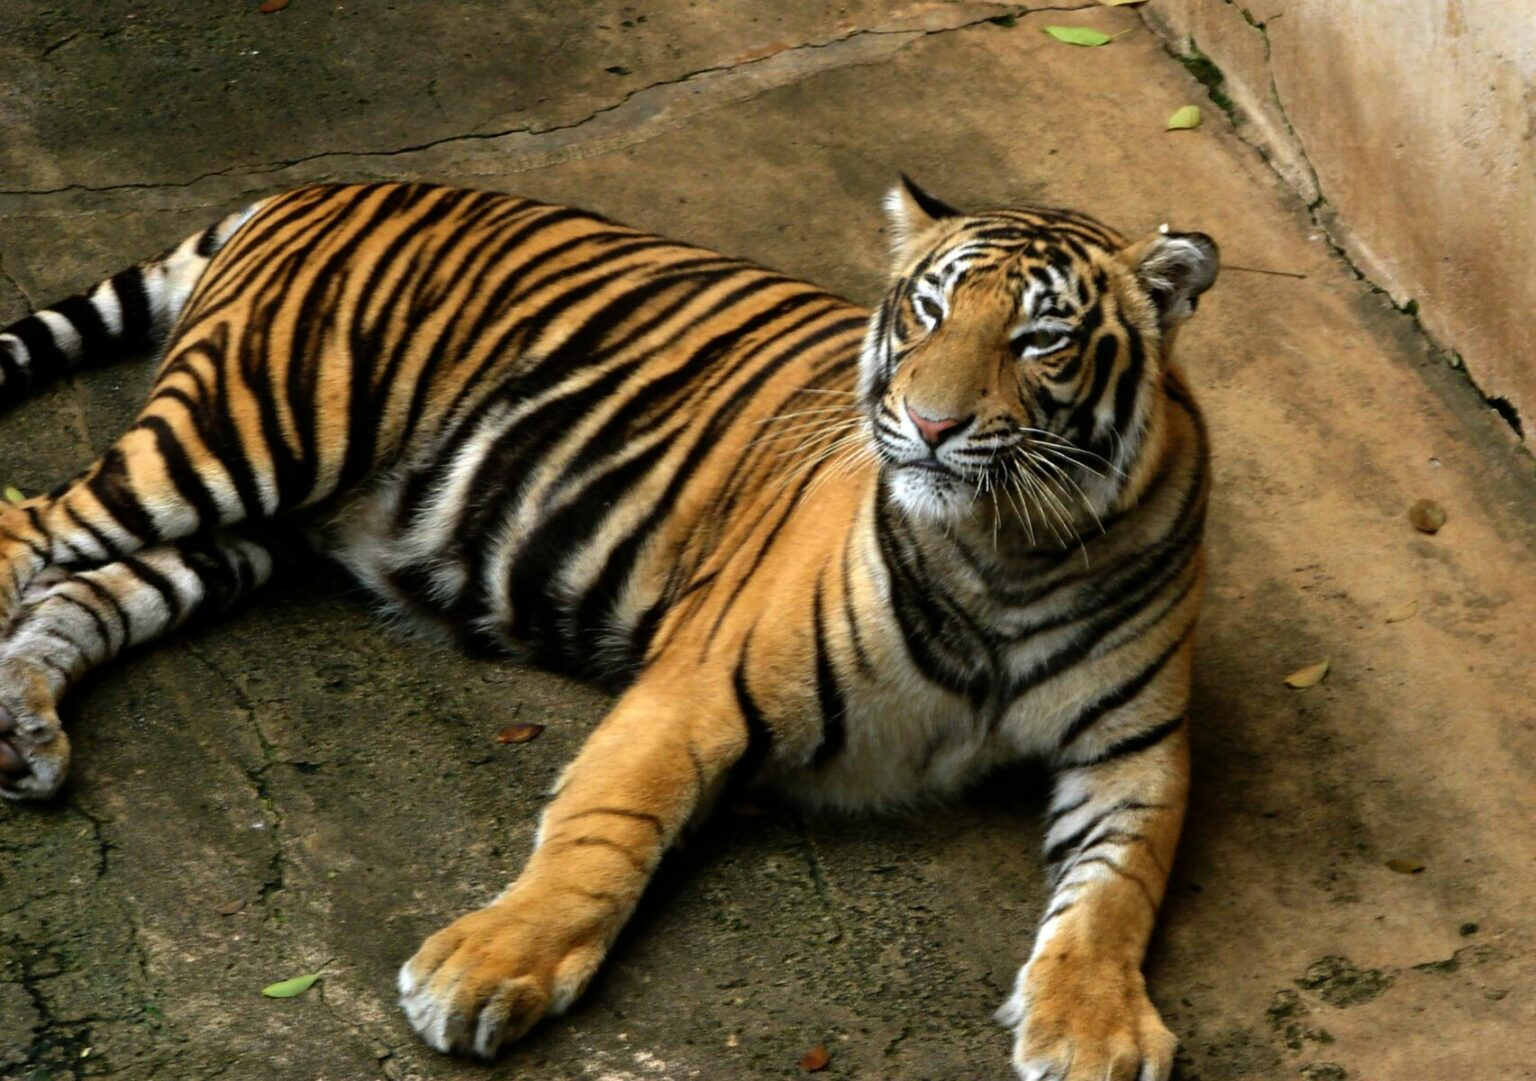 A Bengal tiger fled to America captured after terrorizing locals